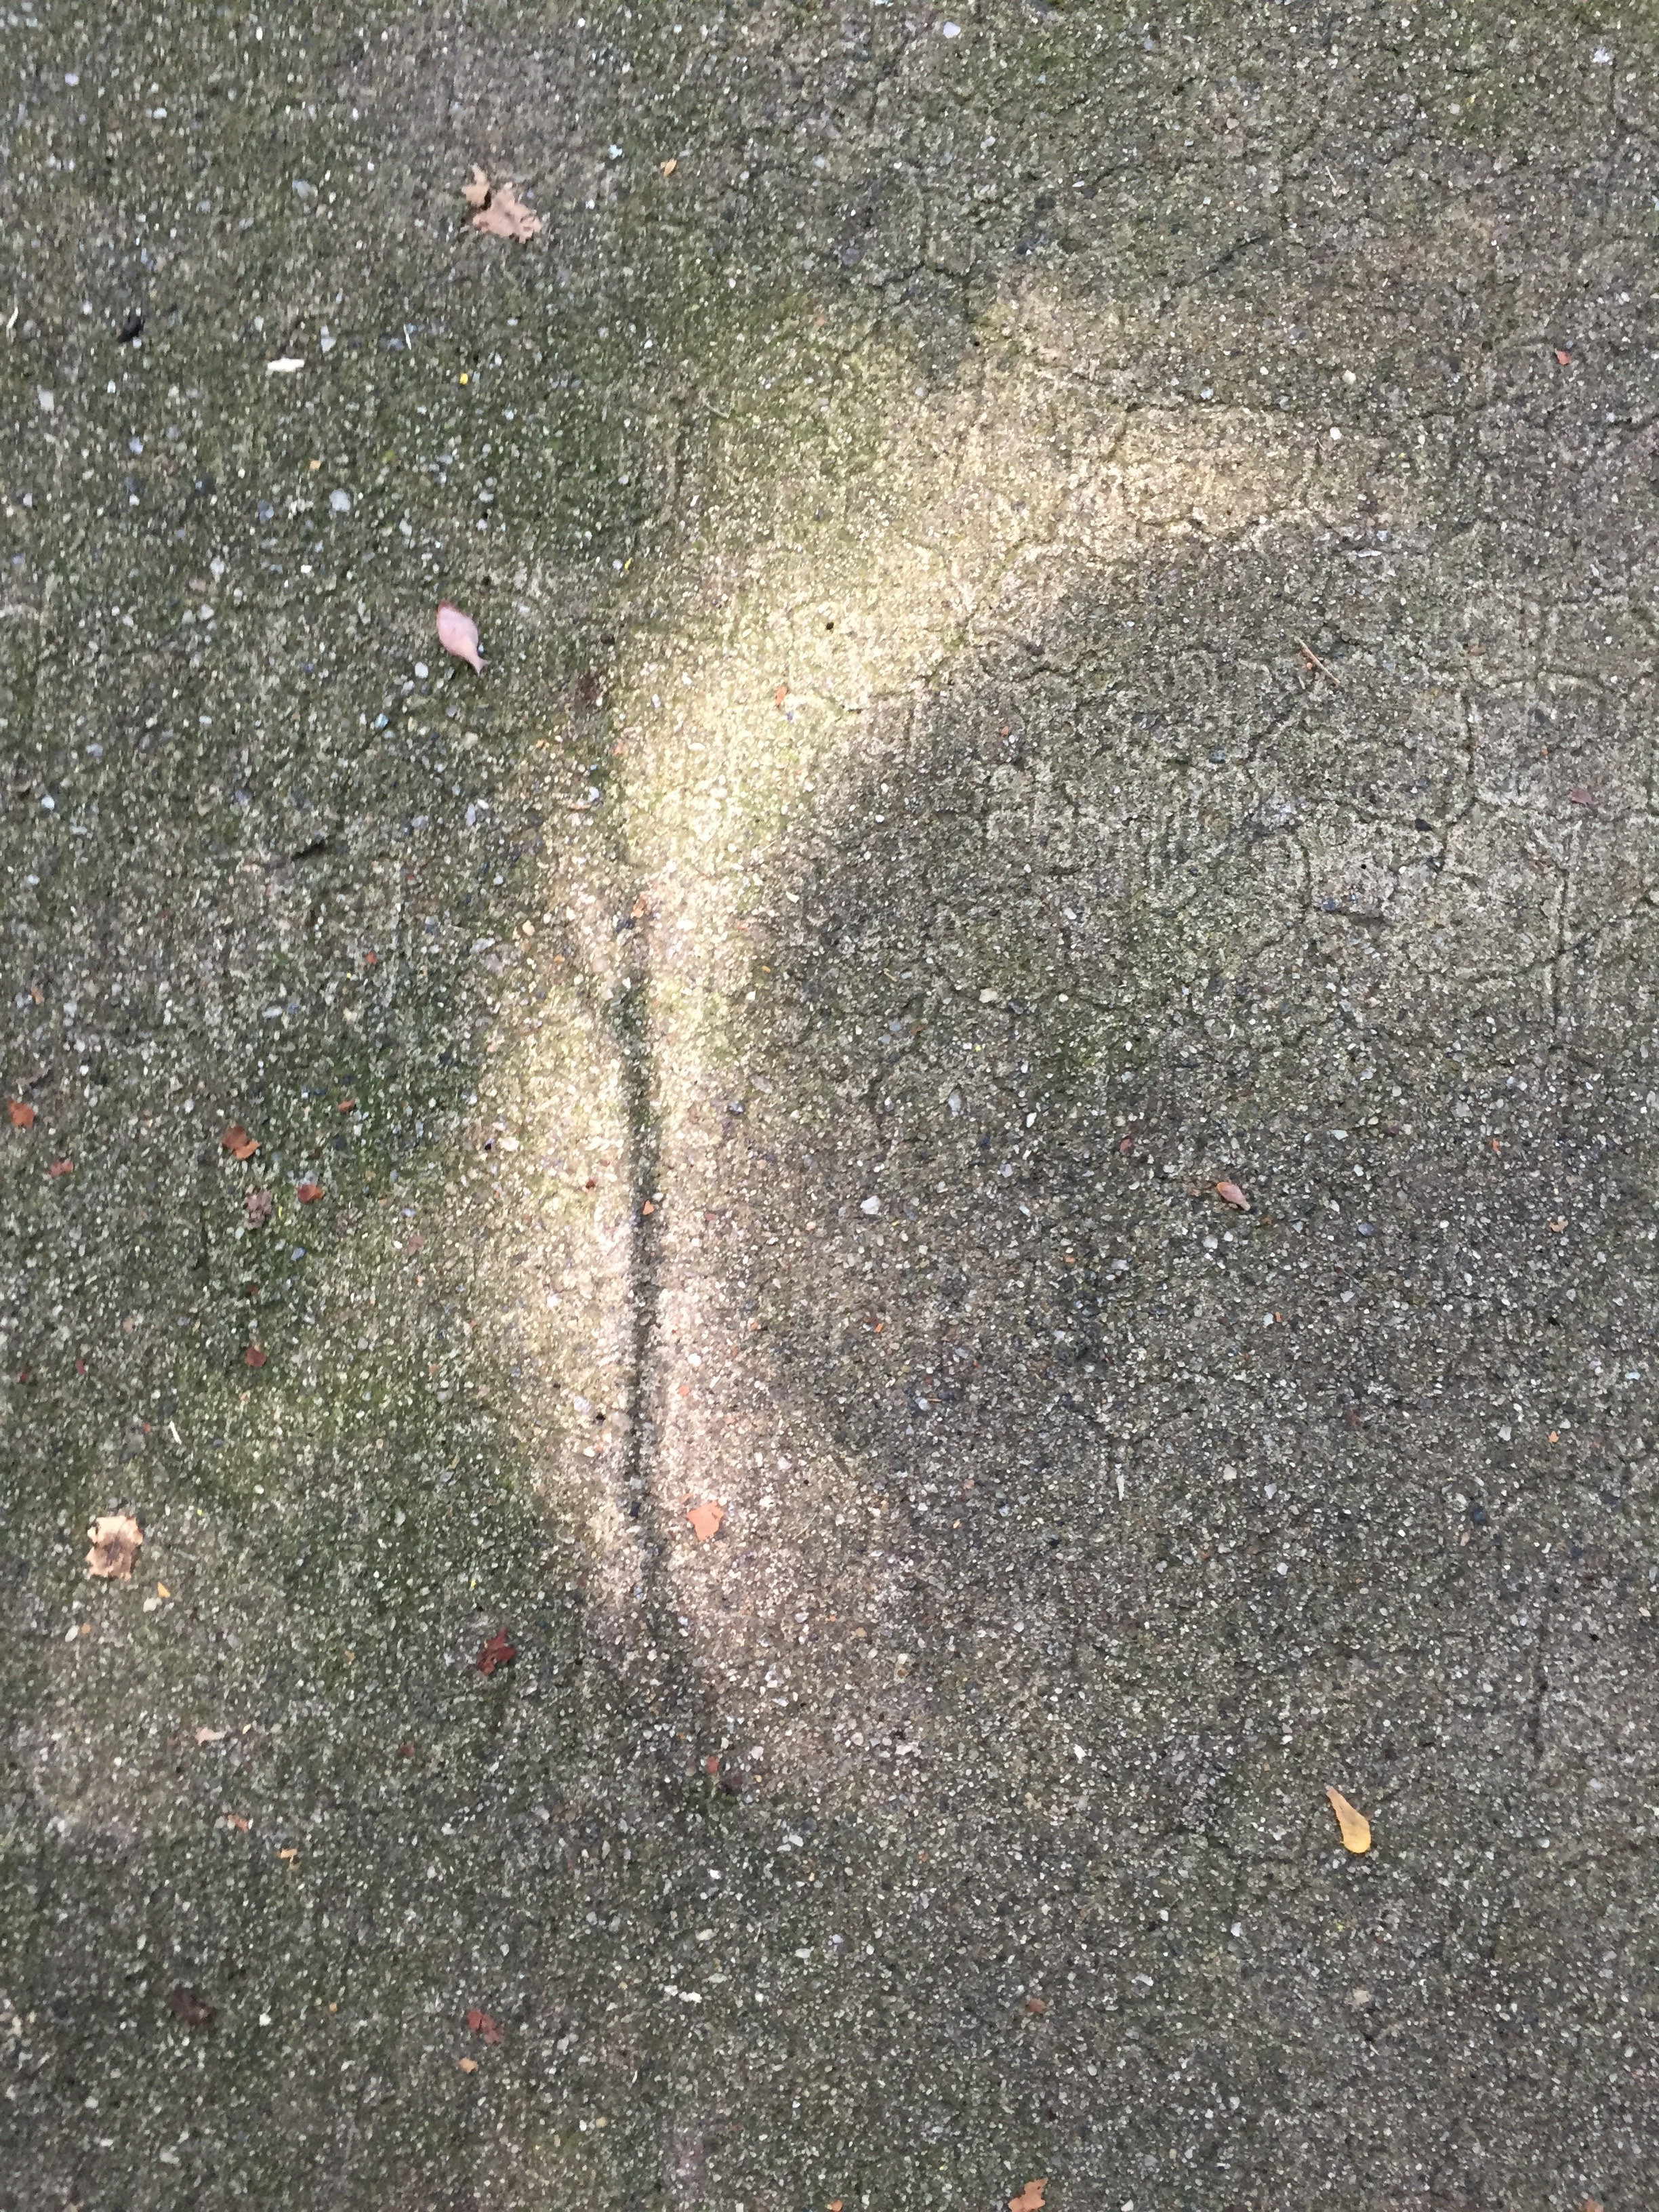 moon-shadow-on-driveway.jpg